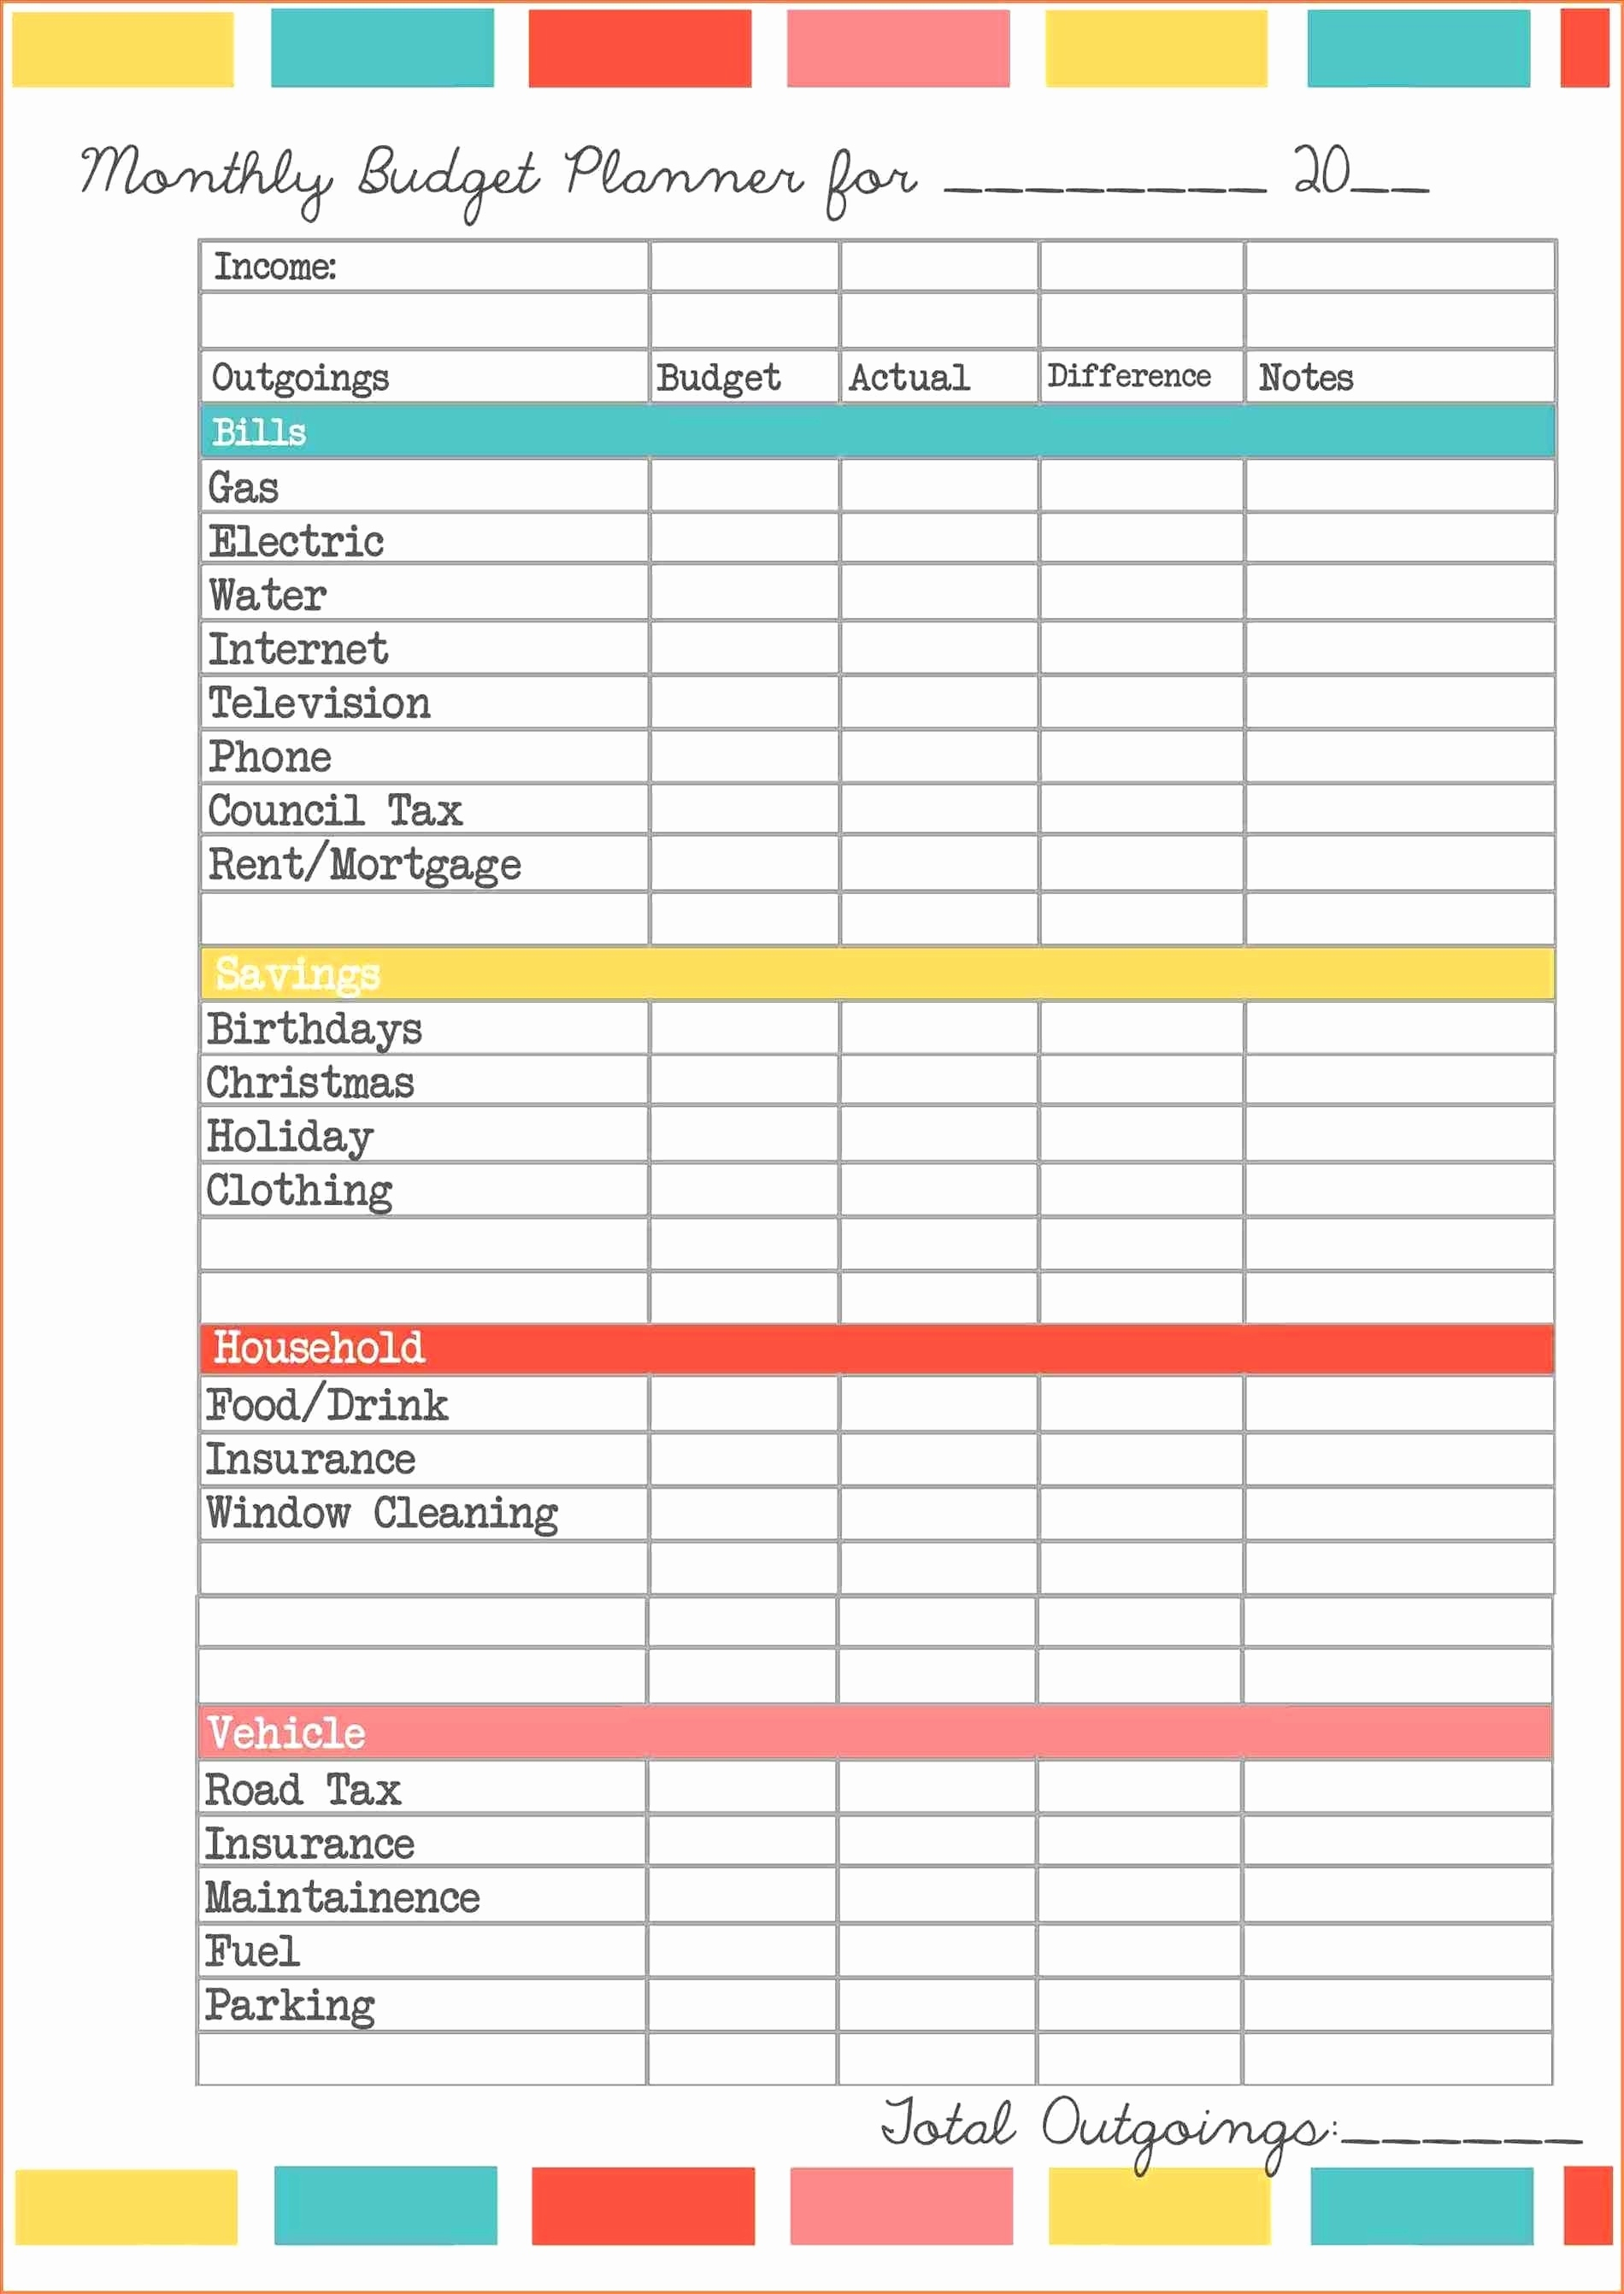 Excel Accounting Spreadsheet For Small Business Within Accounting Spreadsheet Template For Small Business Excel System